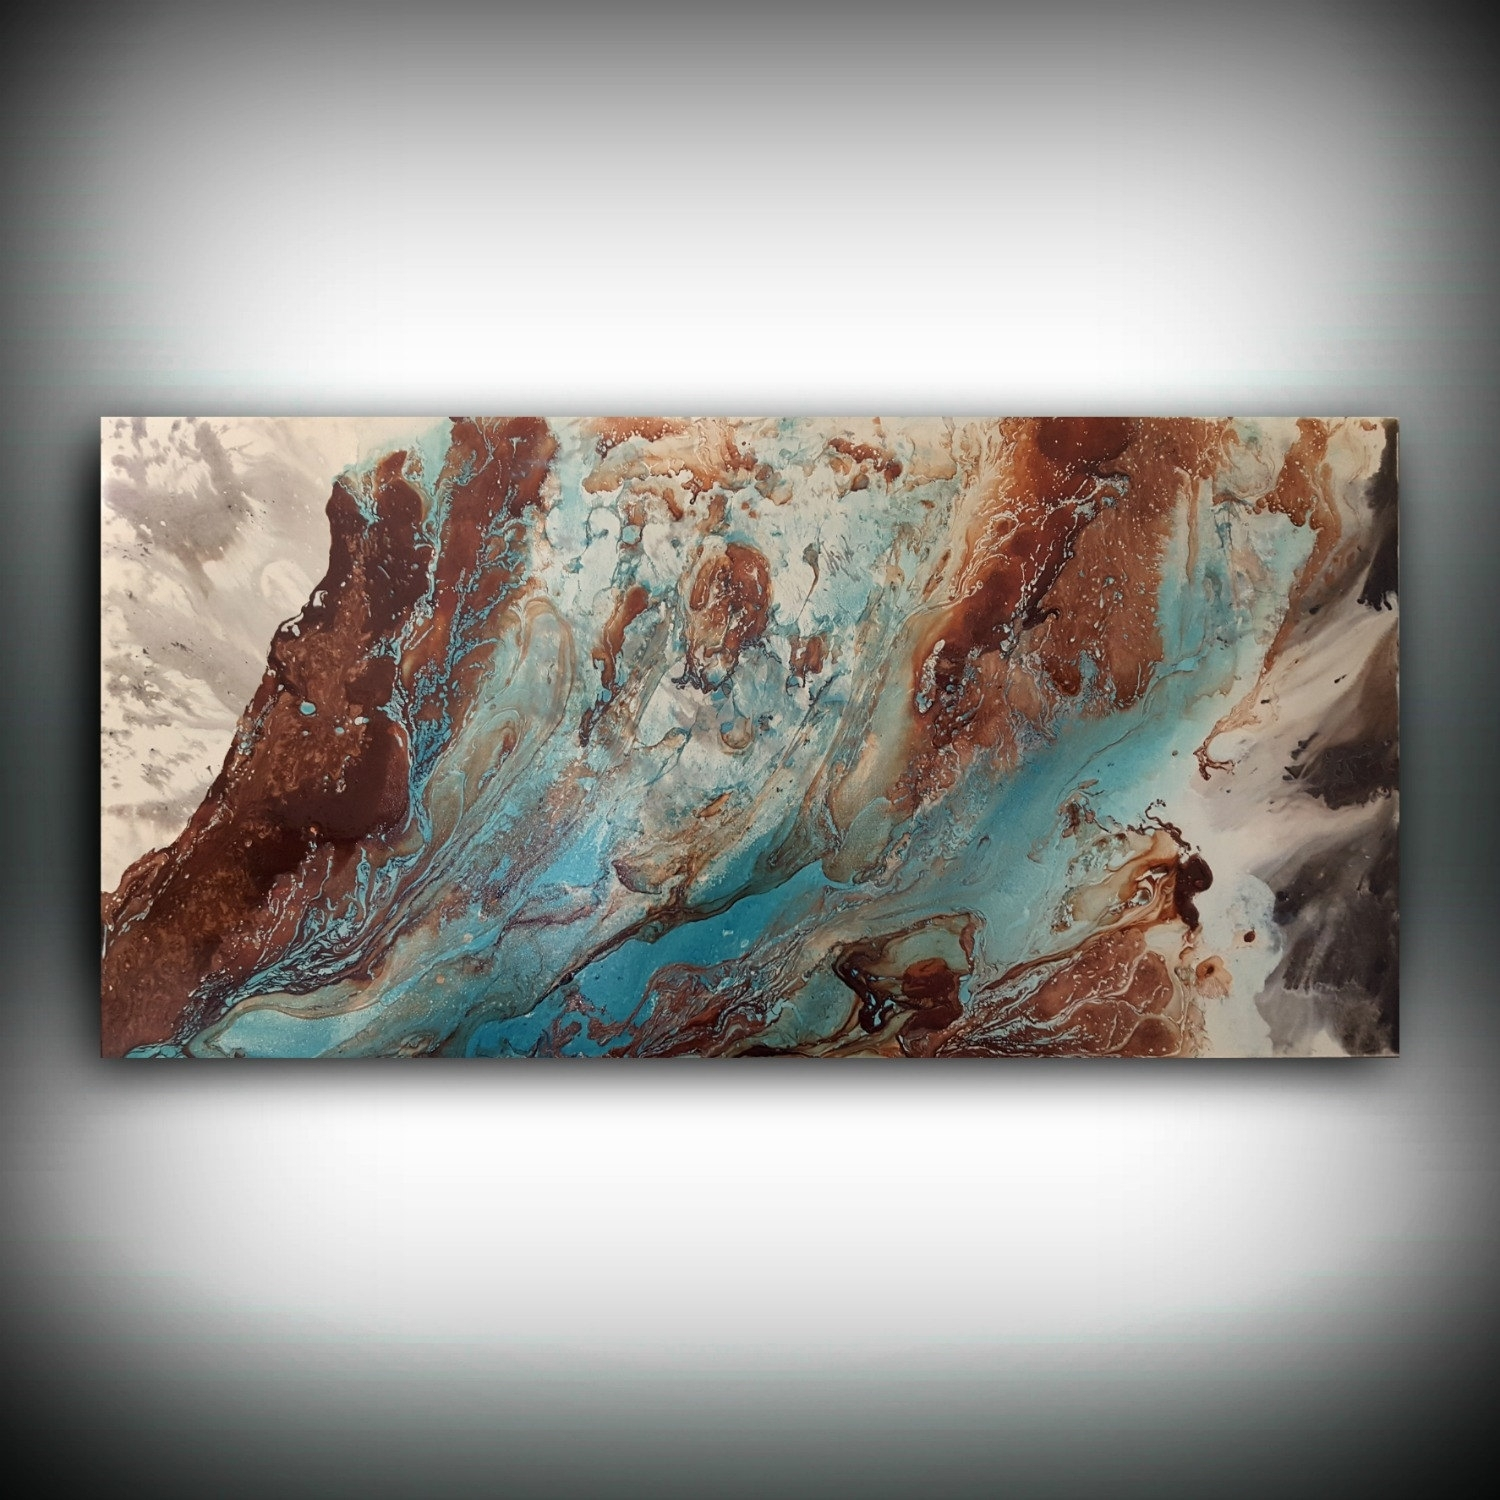 Original Painting, Art Painting Acrylic Painting Abstract Painting Intended For Most Current Blue And Brown Abstract Wall Art (View 12 of 18)